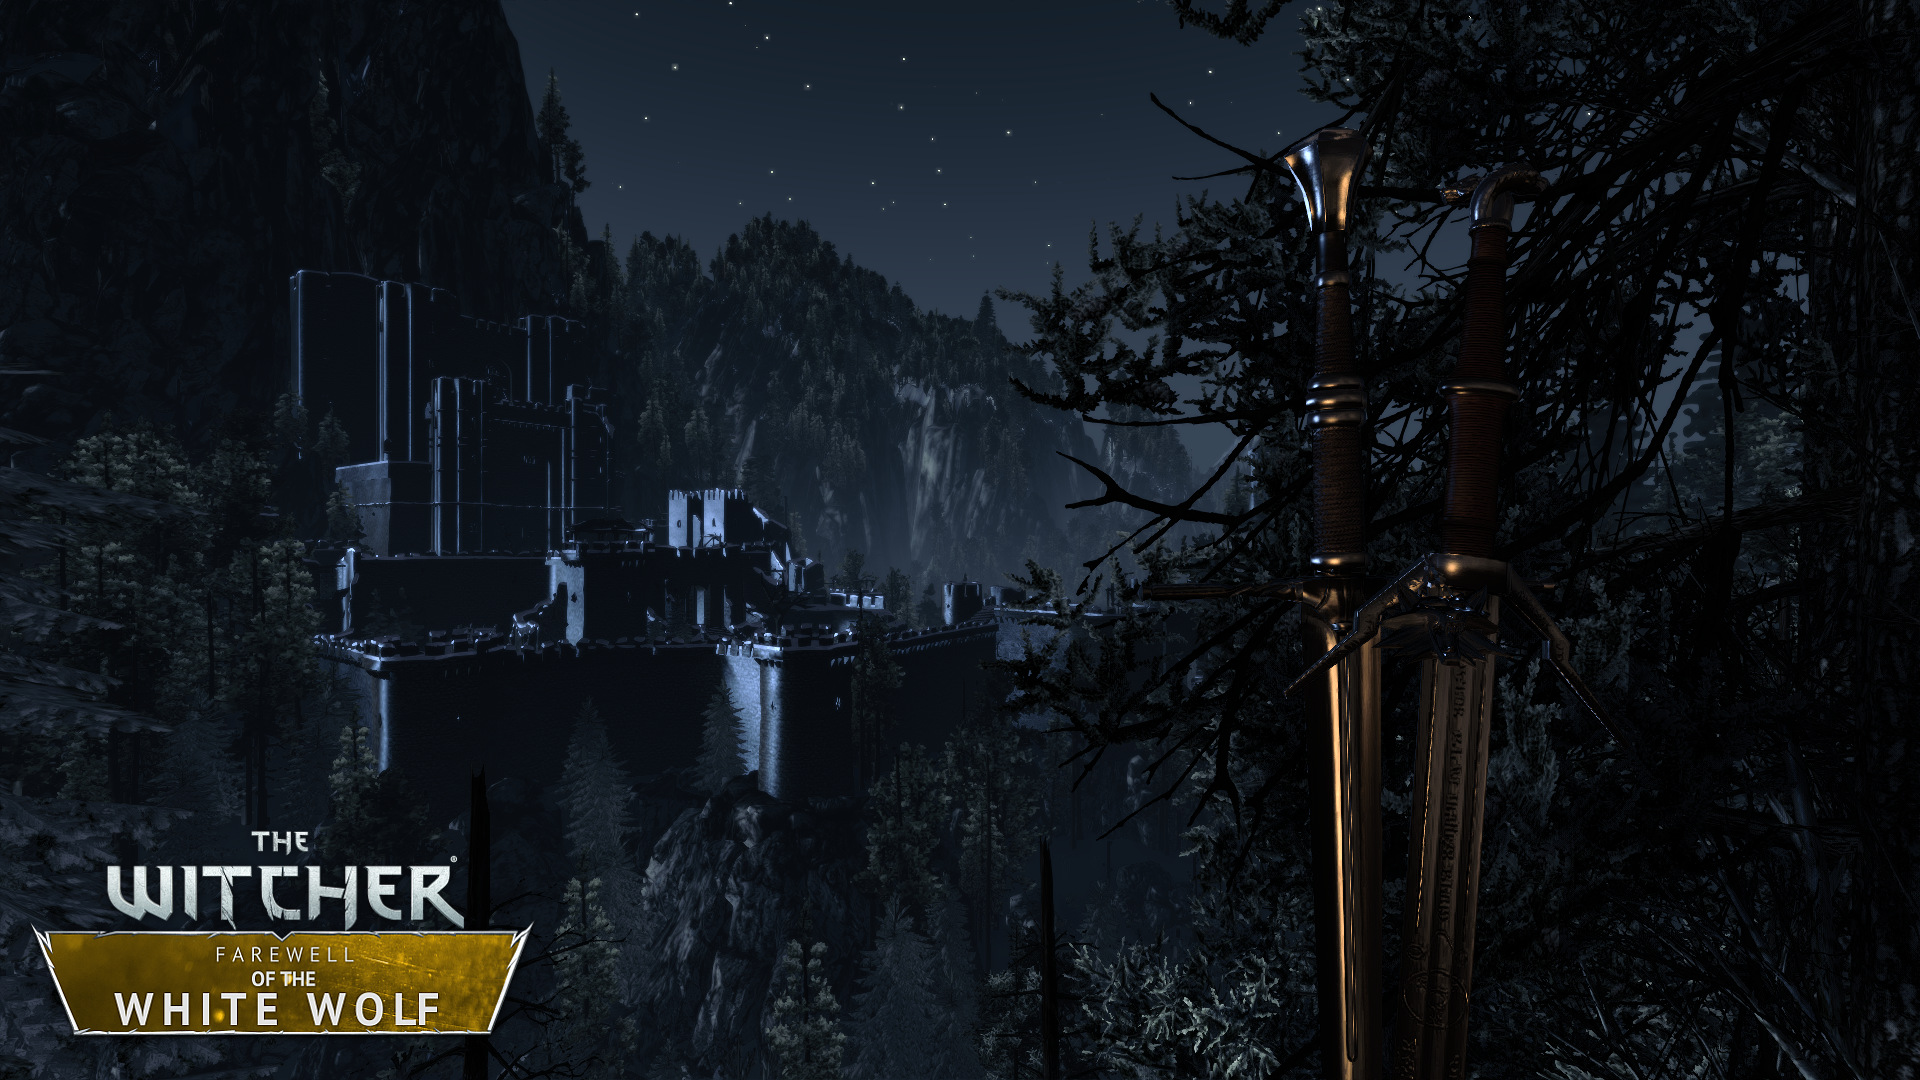 witcher-farewell-of-the-whitewolf-009